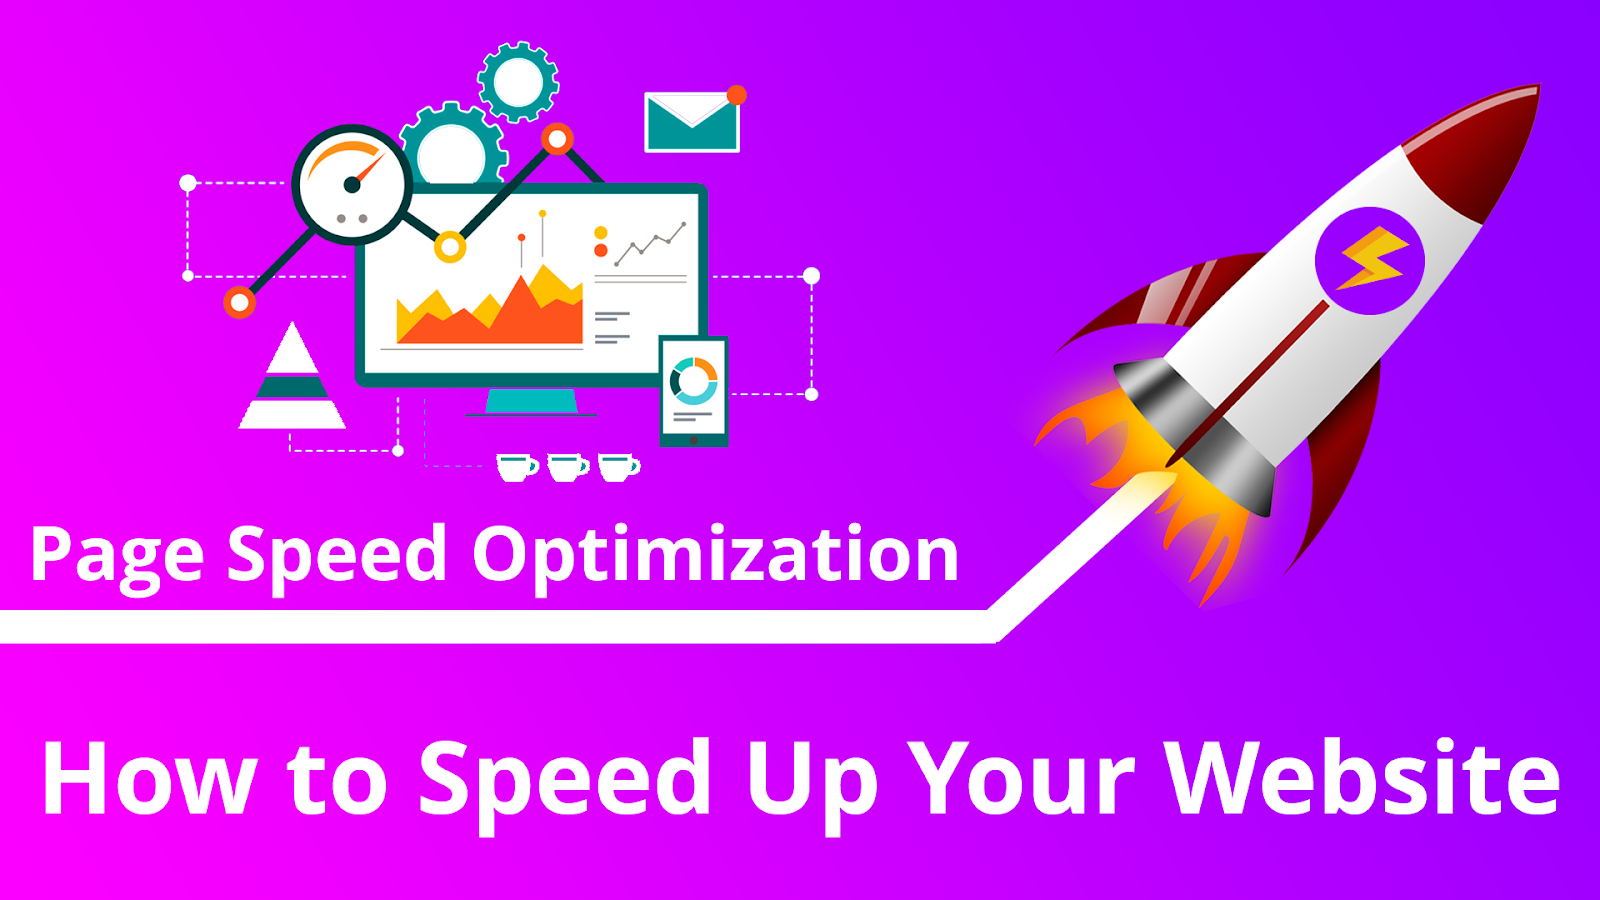 Page Speed Optimization: How to Improve Your Website's Loading Time